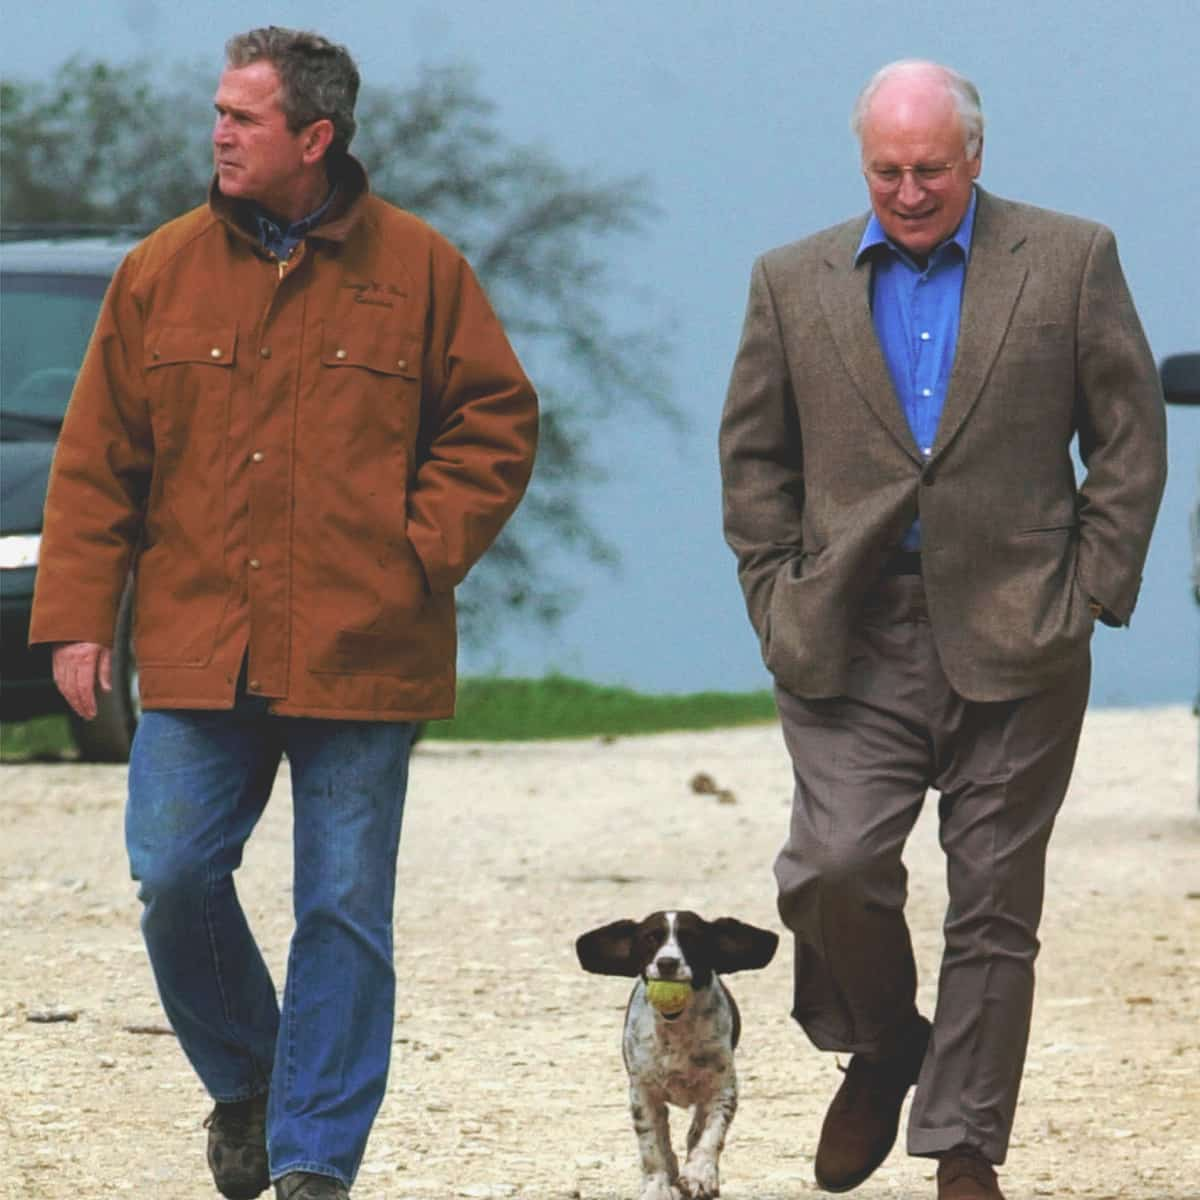 FILE- This Nov. 11, 2000 file photo shows then-Republican presidential candidate Texas Gov. George W. Bush and running mate Dick Cheney walk down a dirt road to meet with reporters, followed by Bush's dog Spot, near Crawford, Texas. (AP Photo/Eric Draper, File)